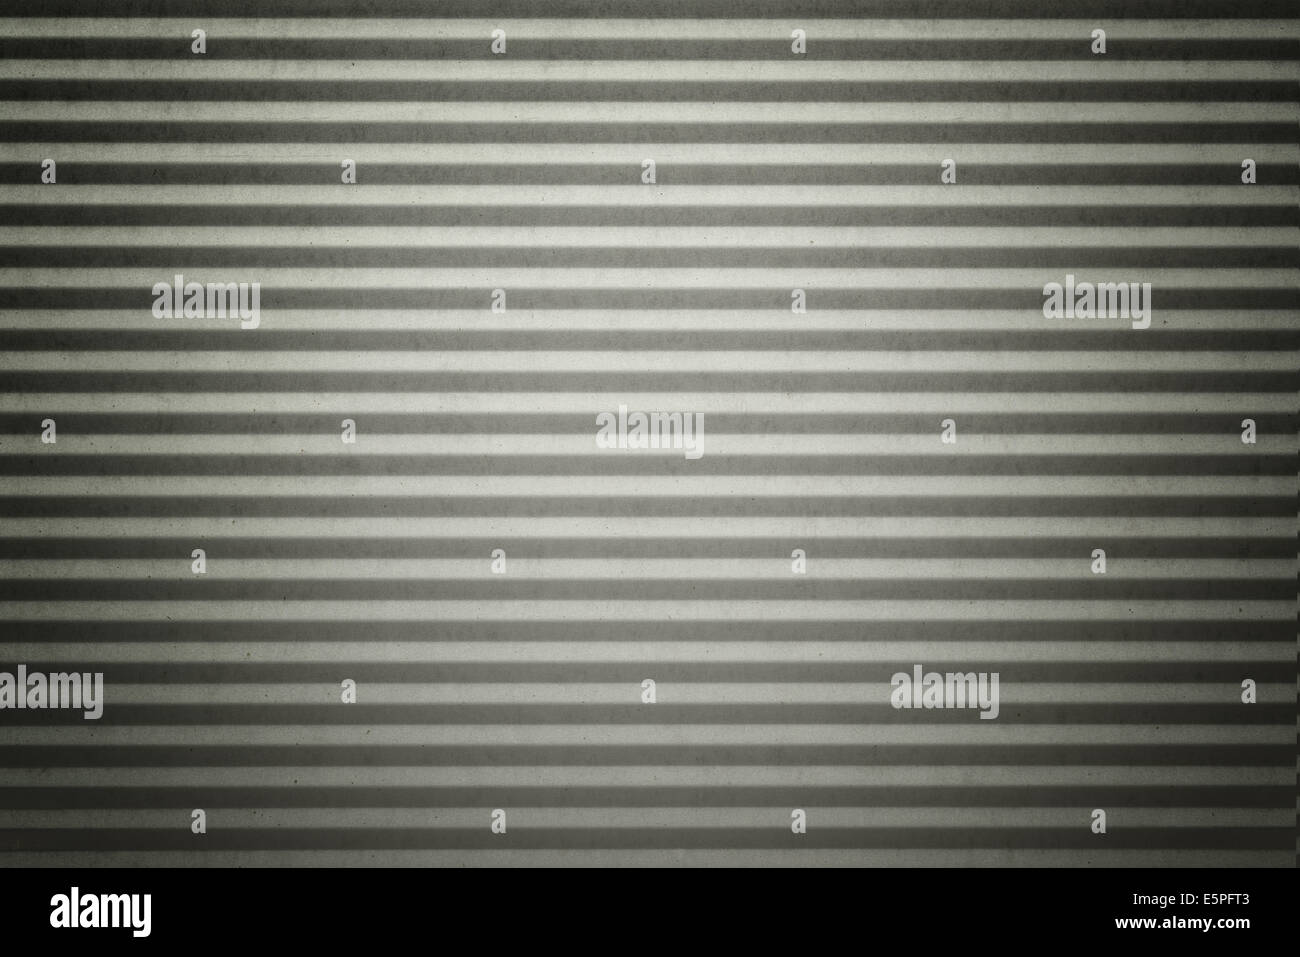 Garage door stripped texture metal grunge background Stock Photo